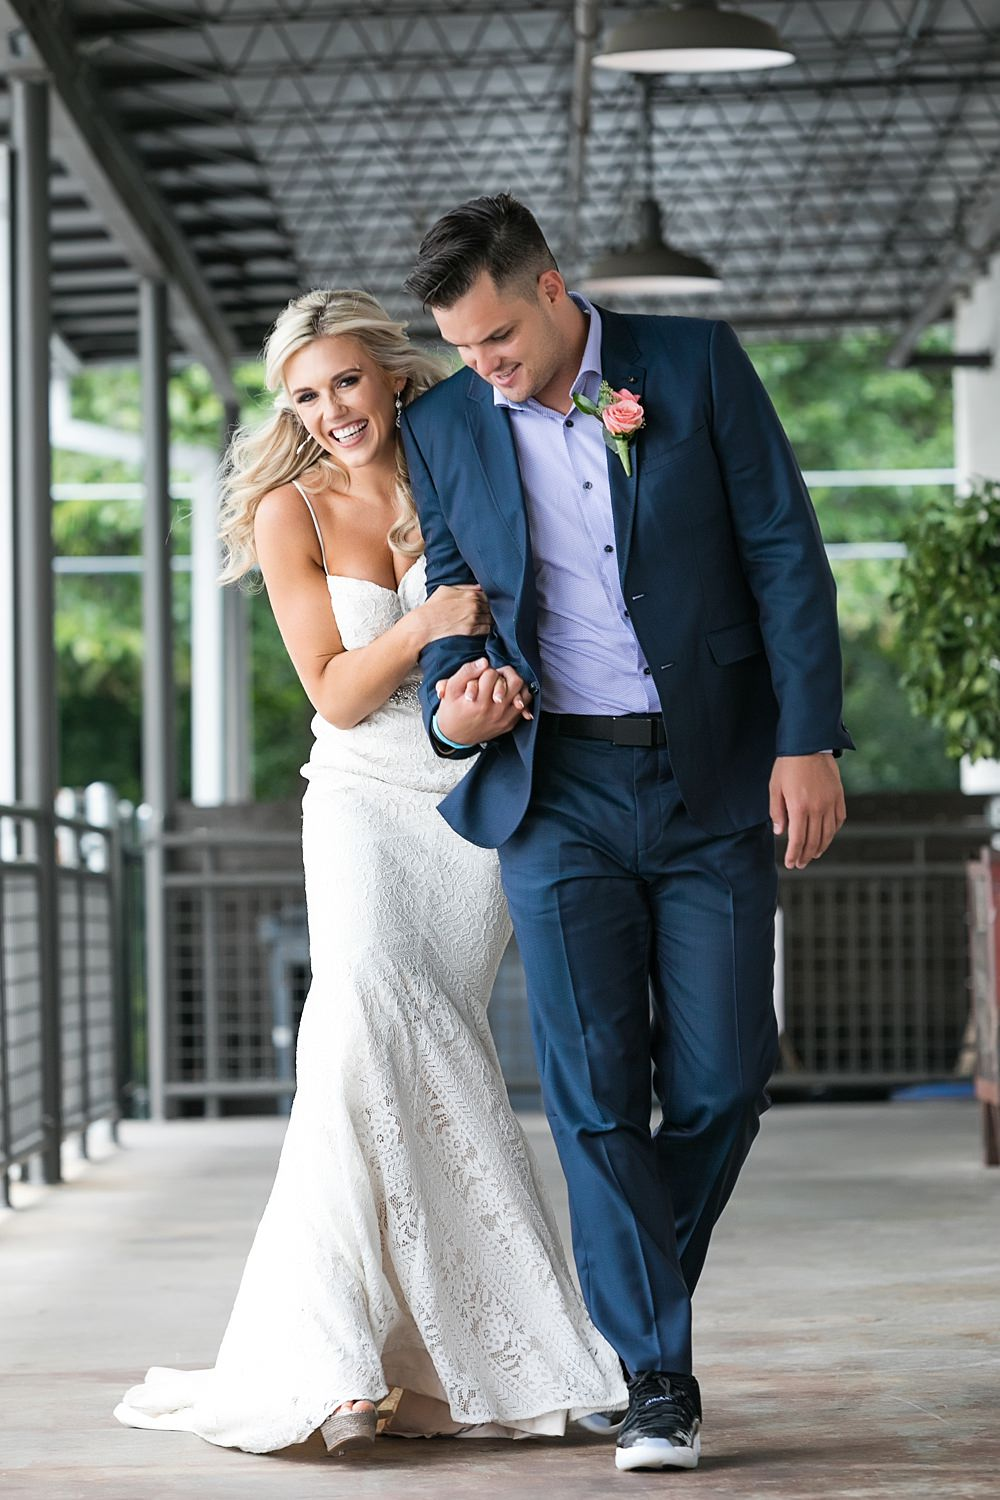 stave room wedding : l events : vue photography 0024